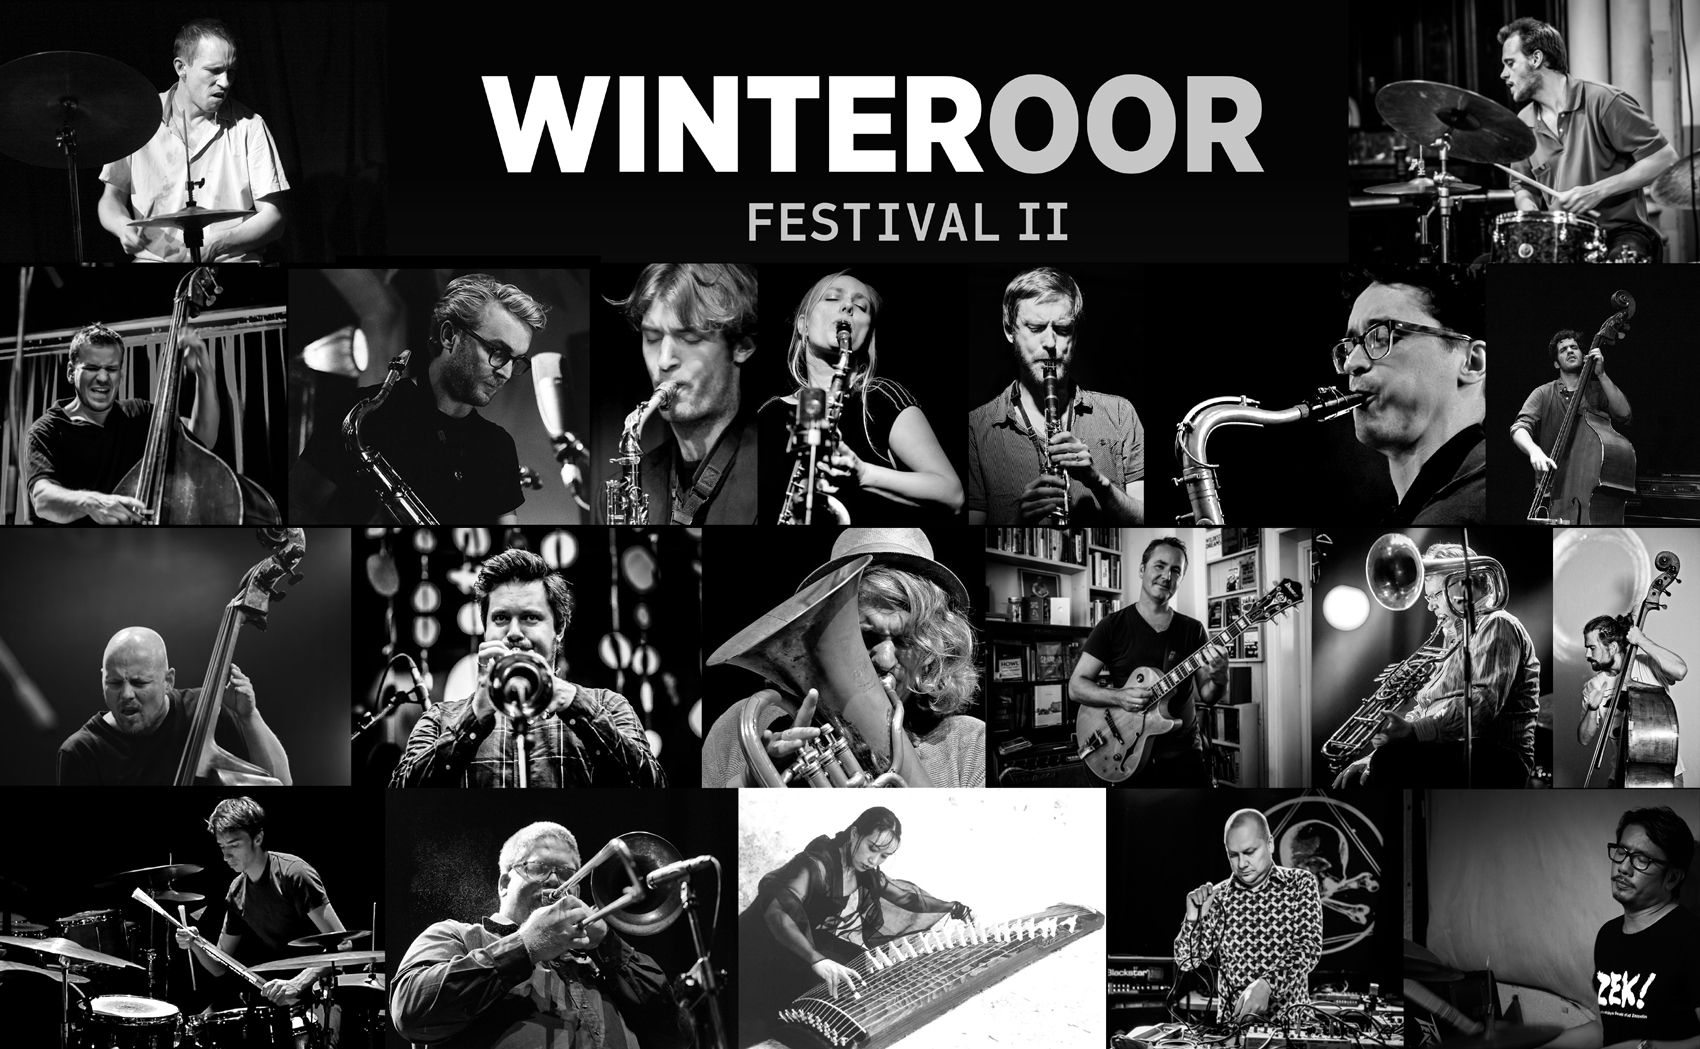 winteroorcollageweb